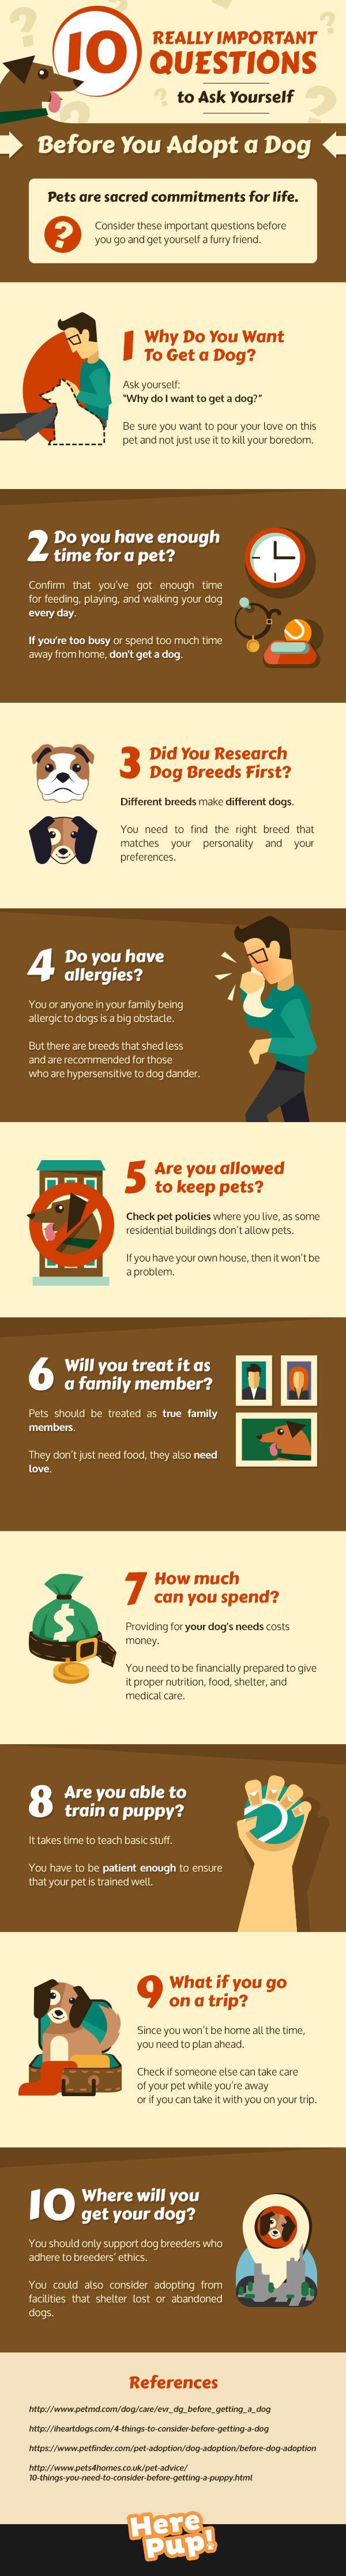 10 Really Important Questions You Should Ask Yourself Before You Adopt a Dog